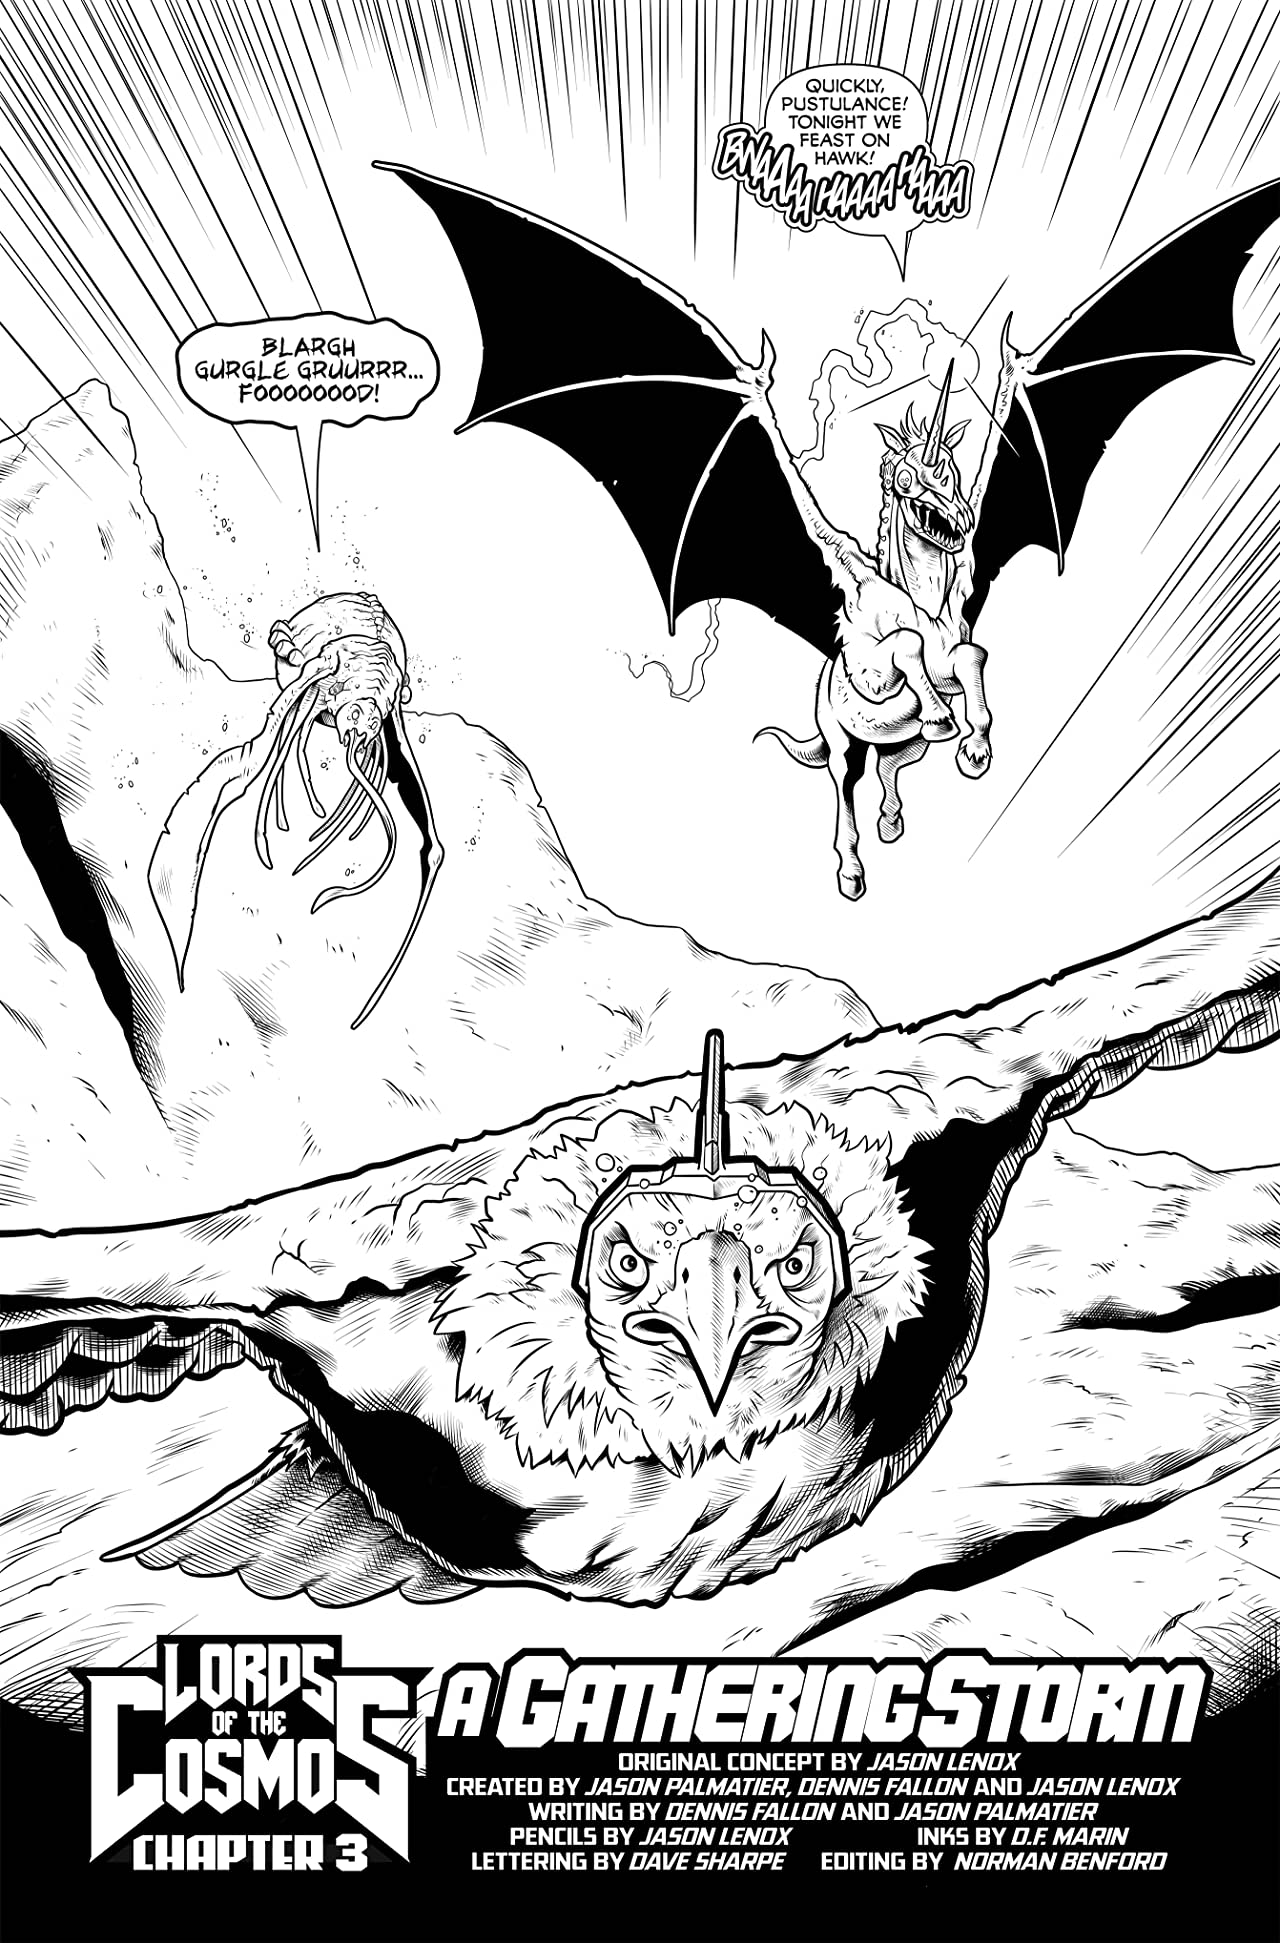 Lords of the Cosmos #3